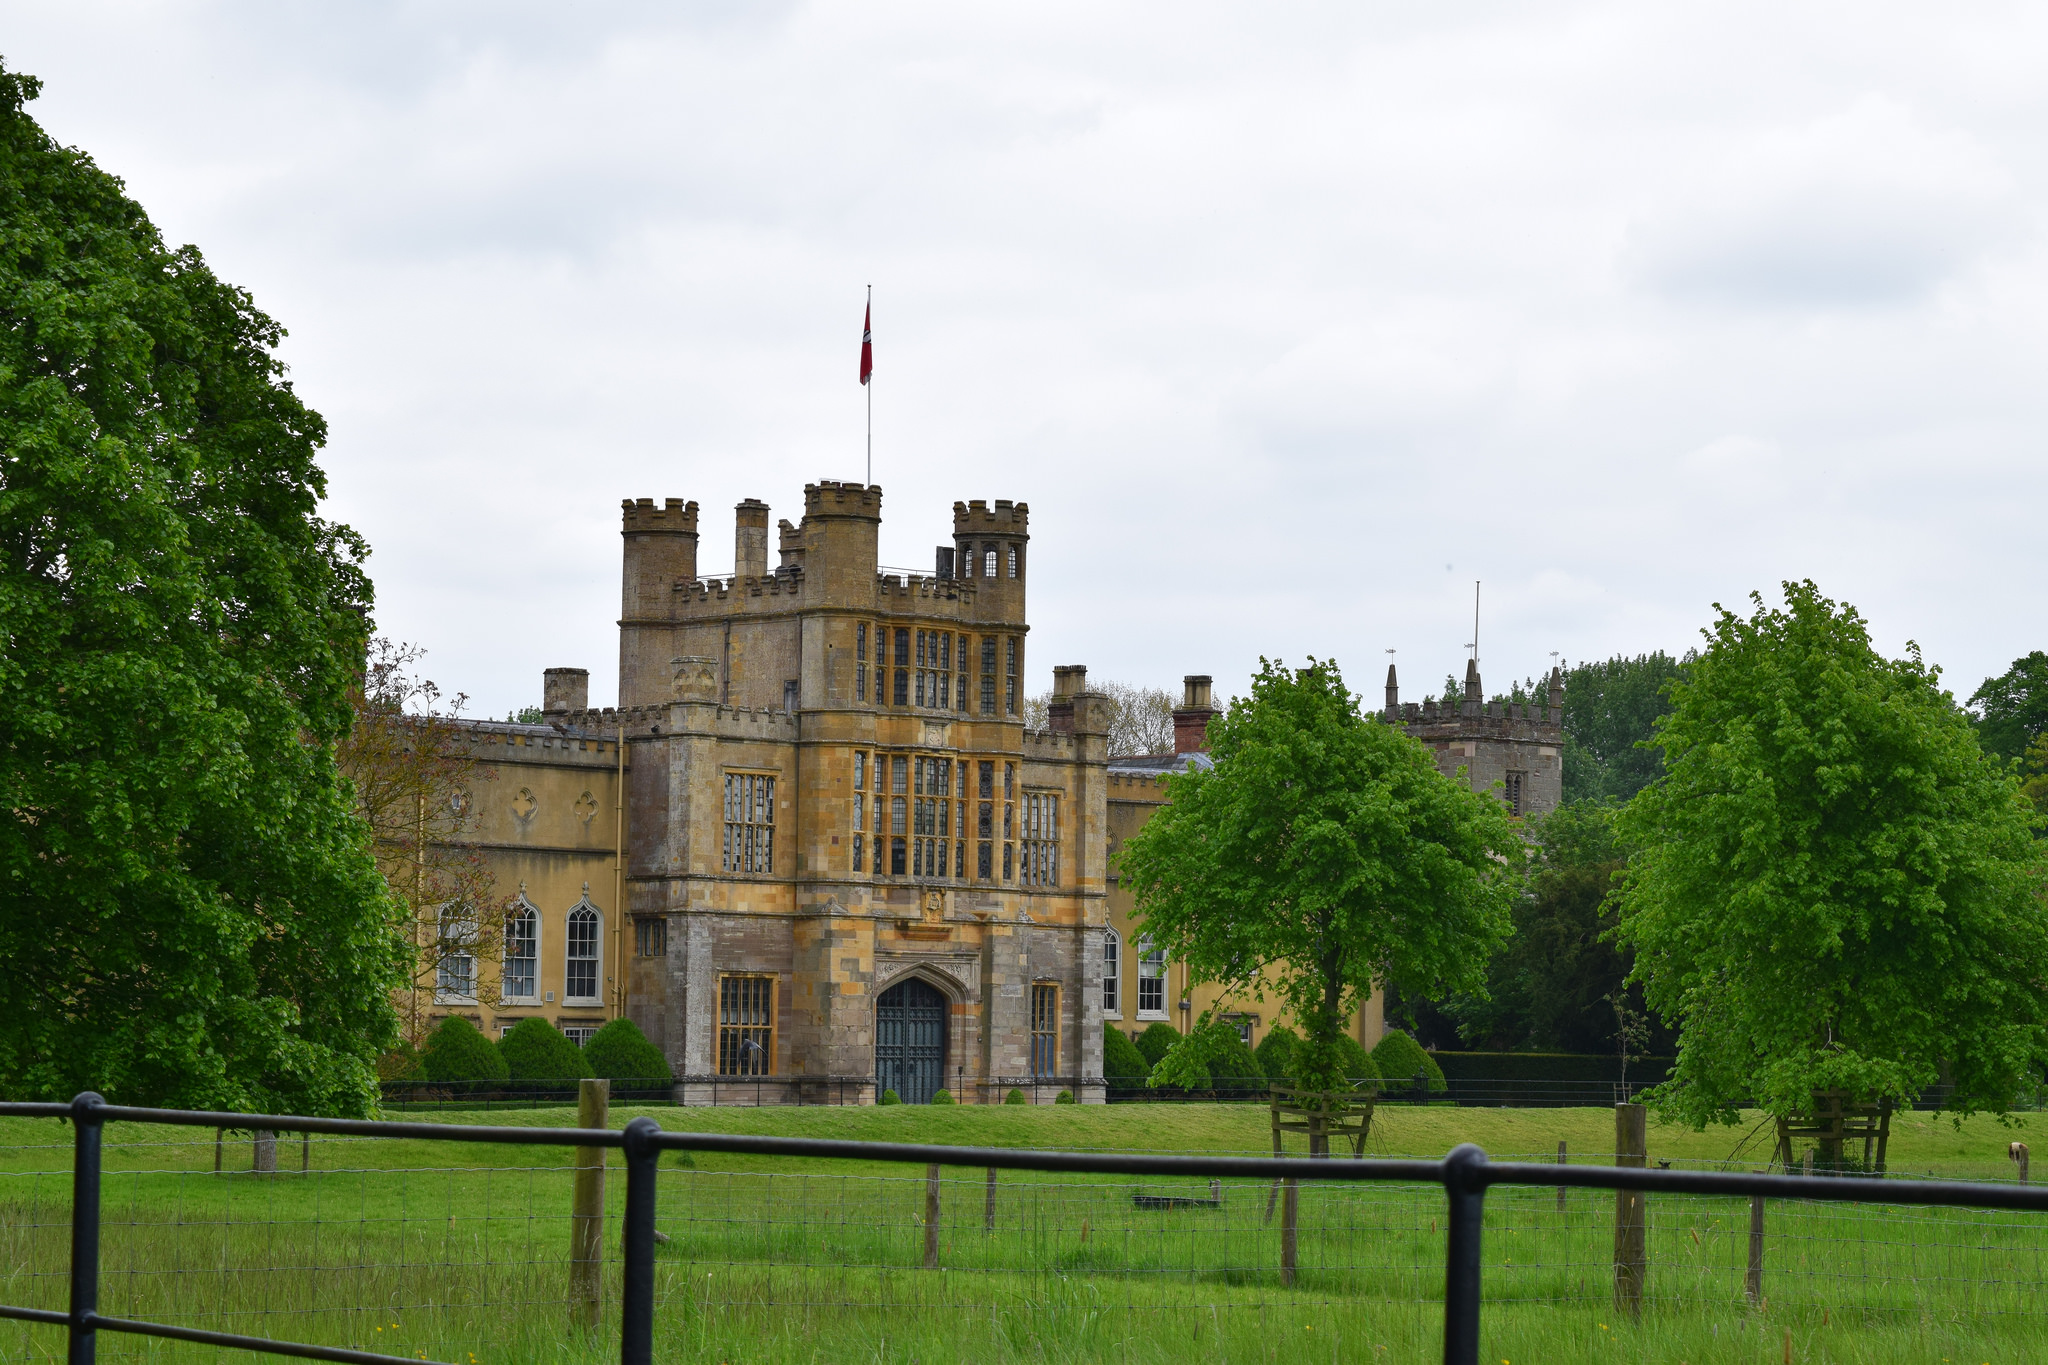 Coughton Court from 1530